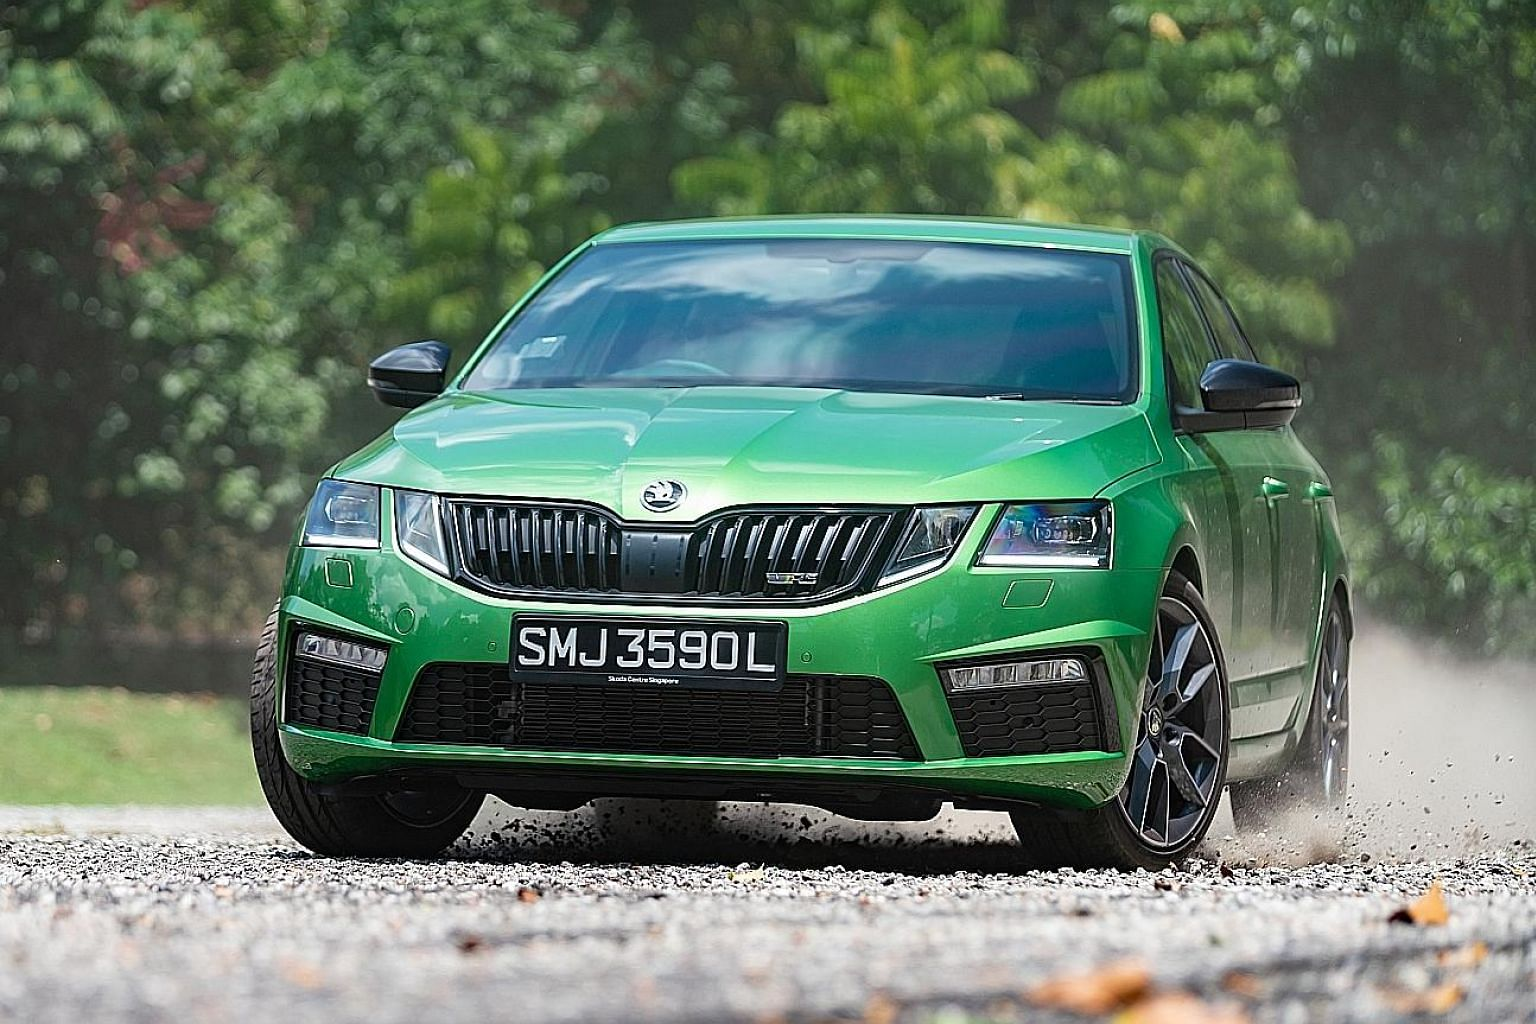 The Skoda Octavia RS245 offers a pliant ride and practicality, with its large storage points and big boot.